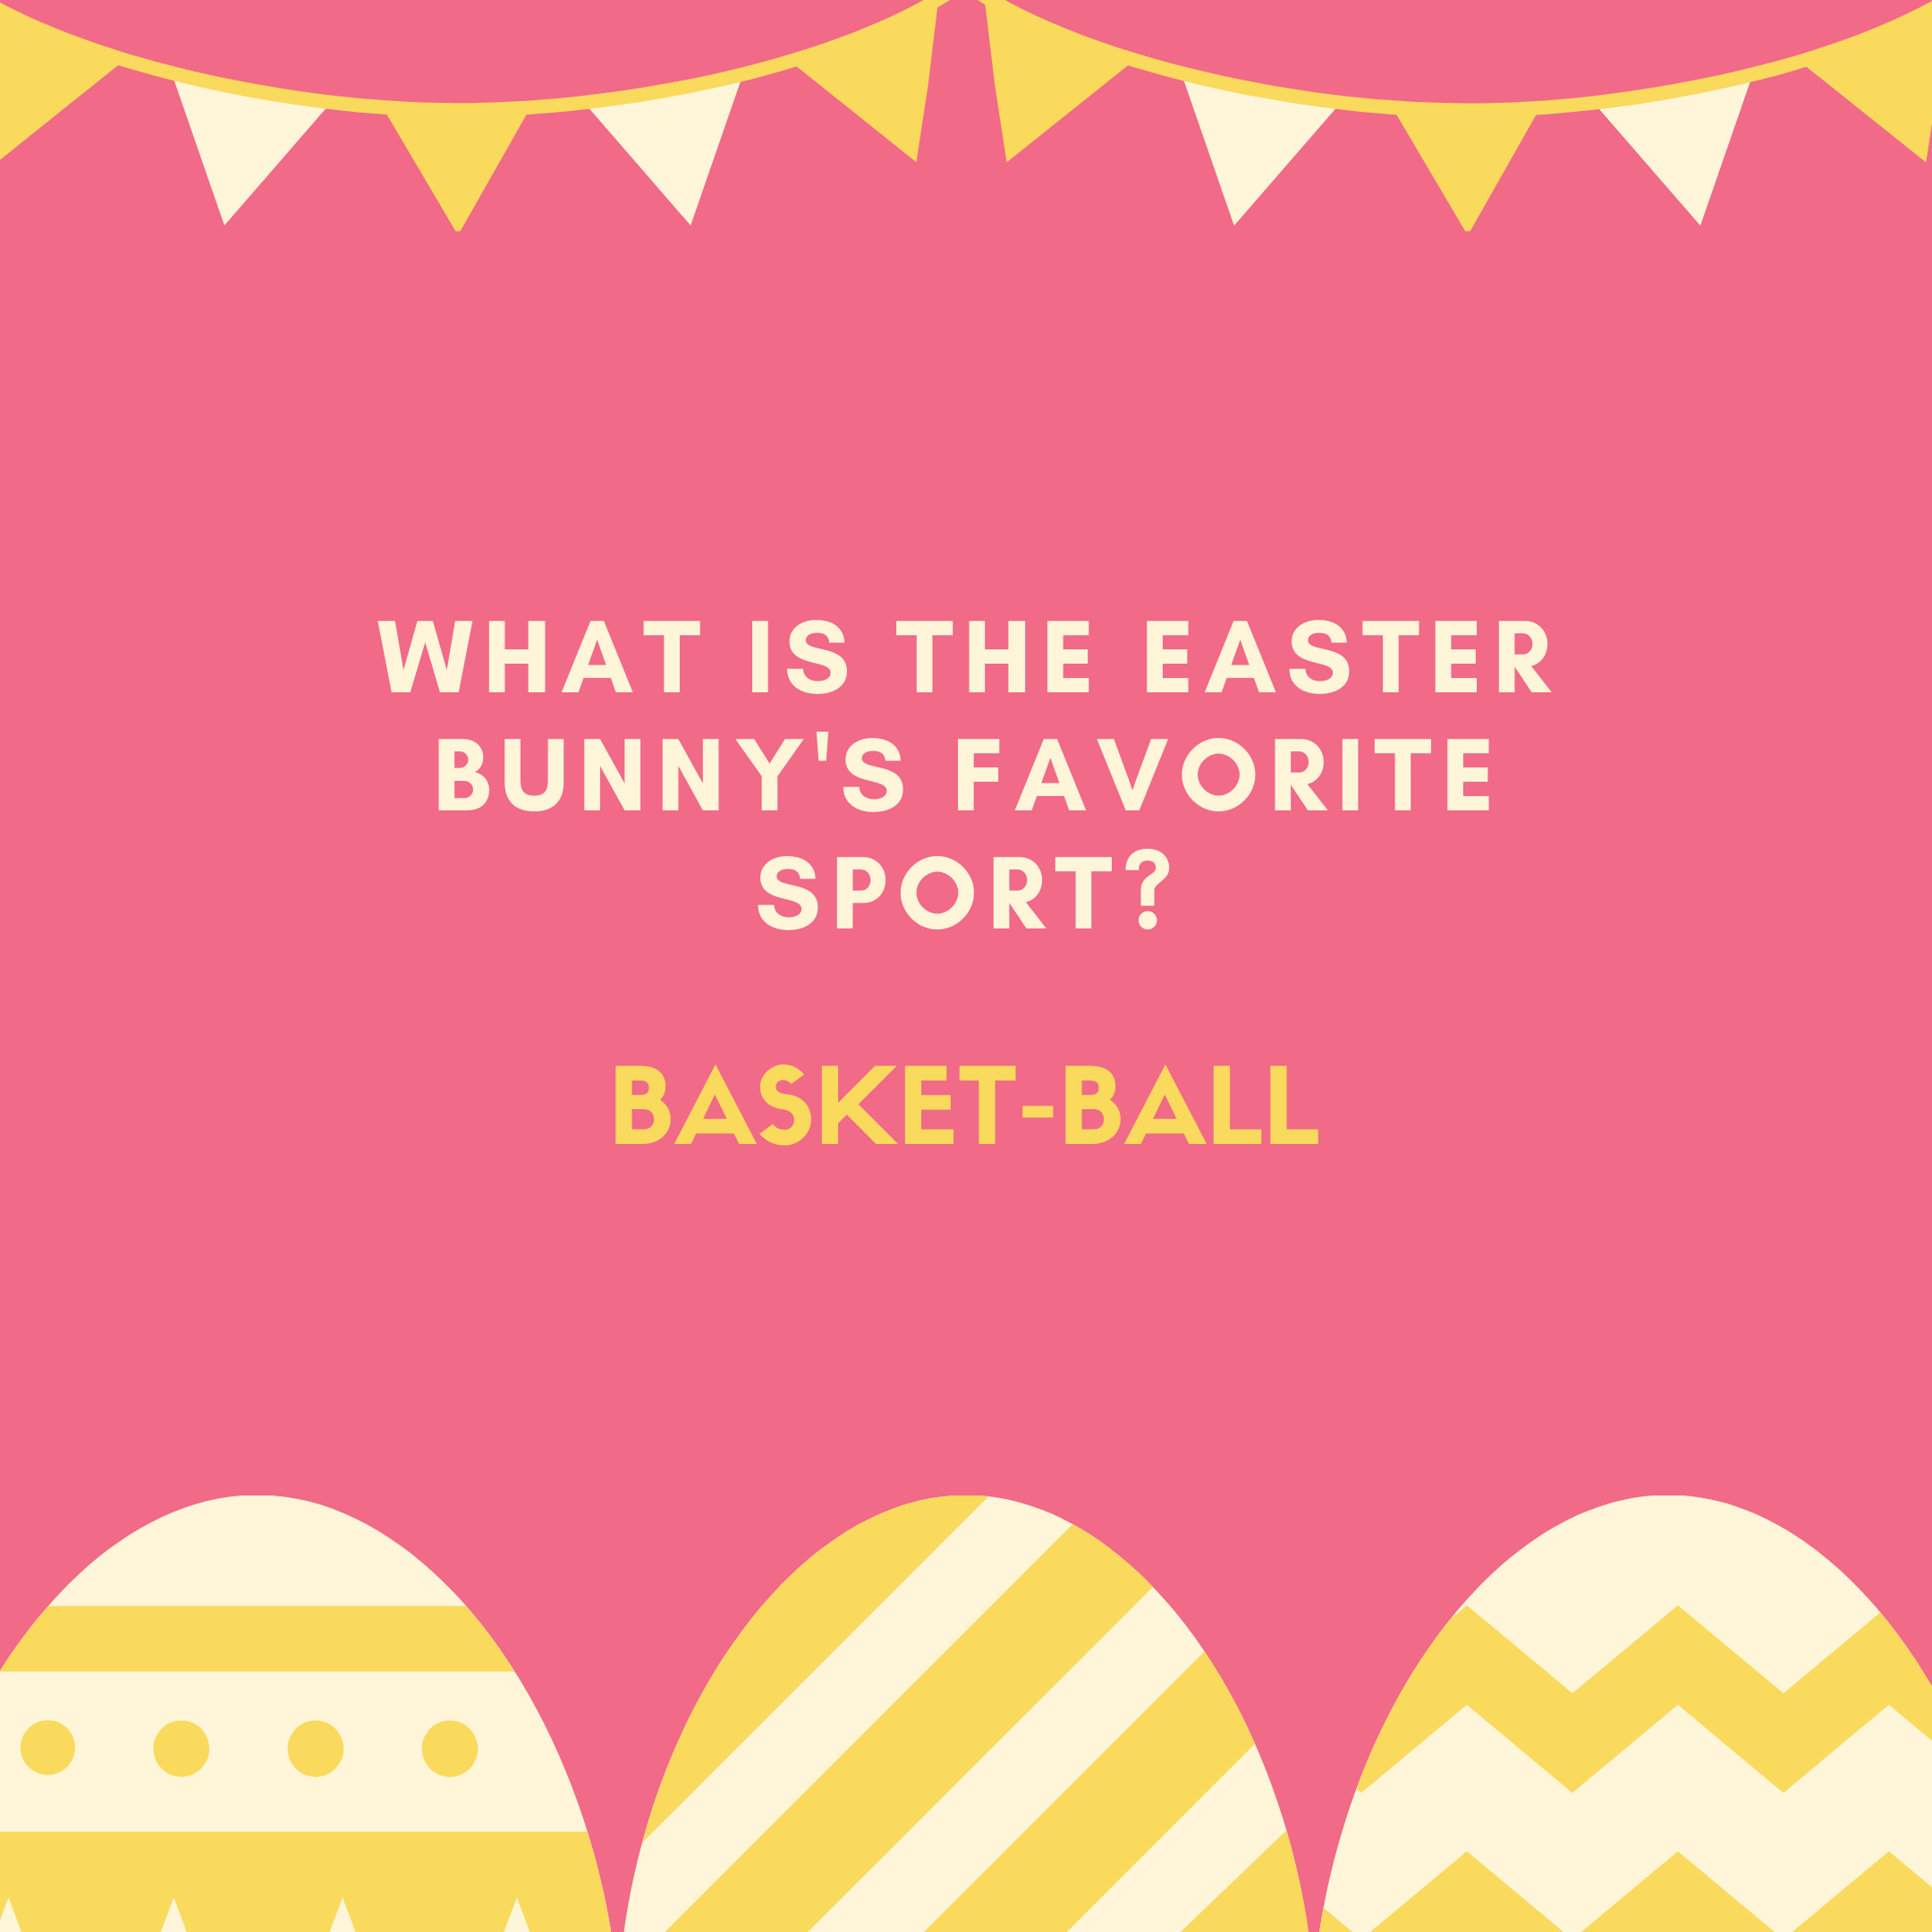 What is the Easter Bunny's favorite sport? Basket-ball